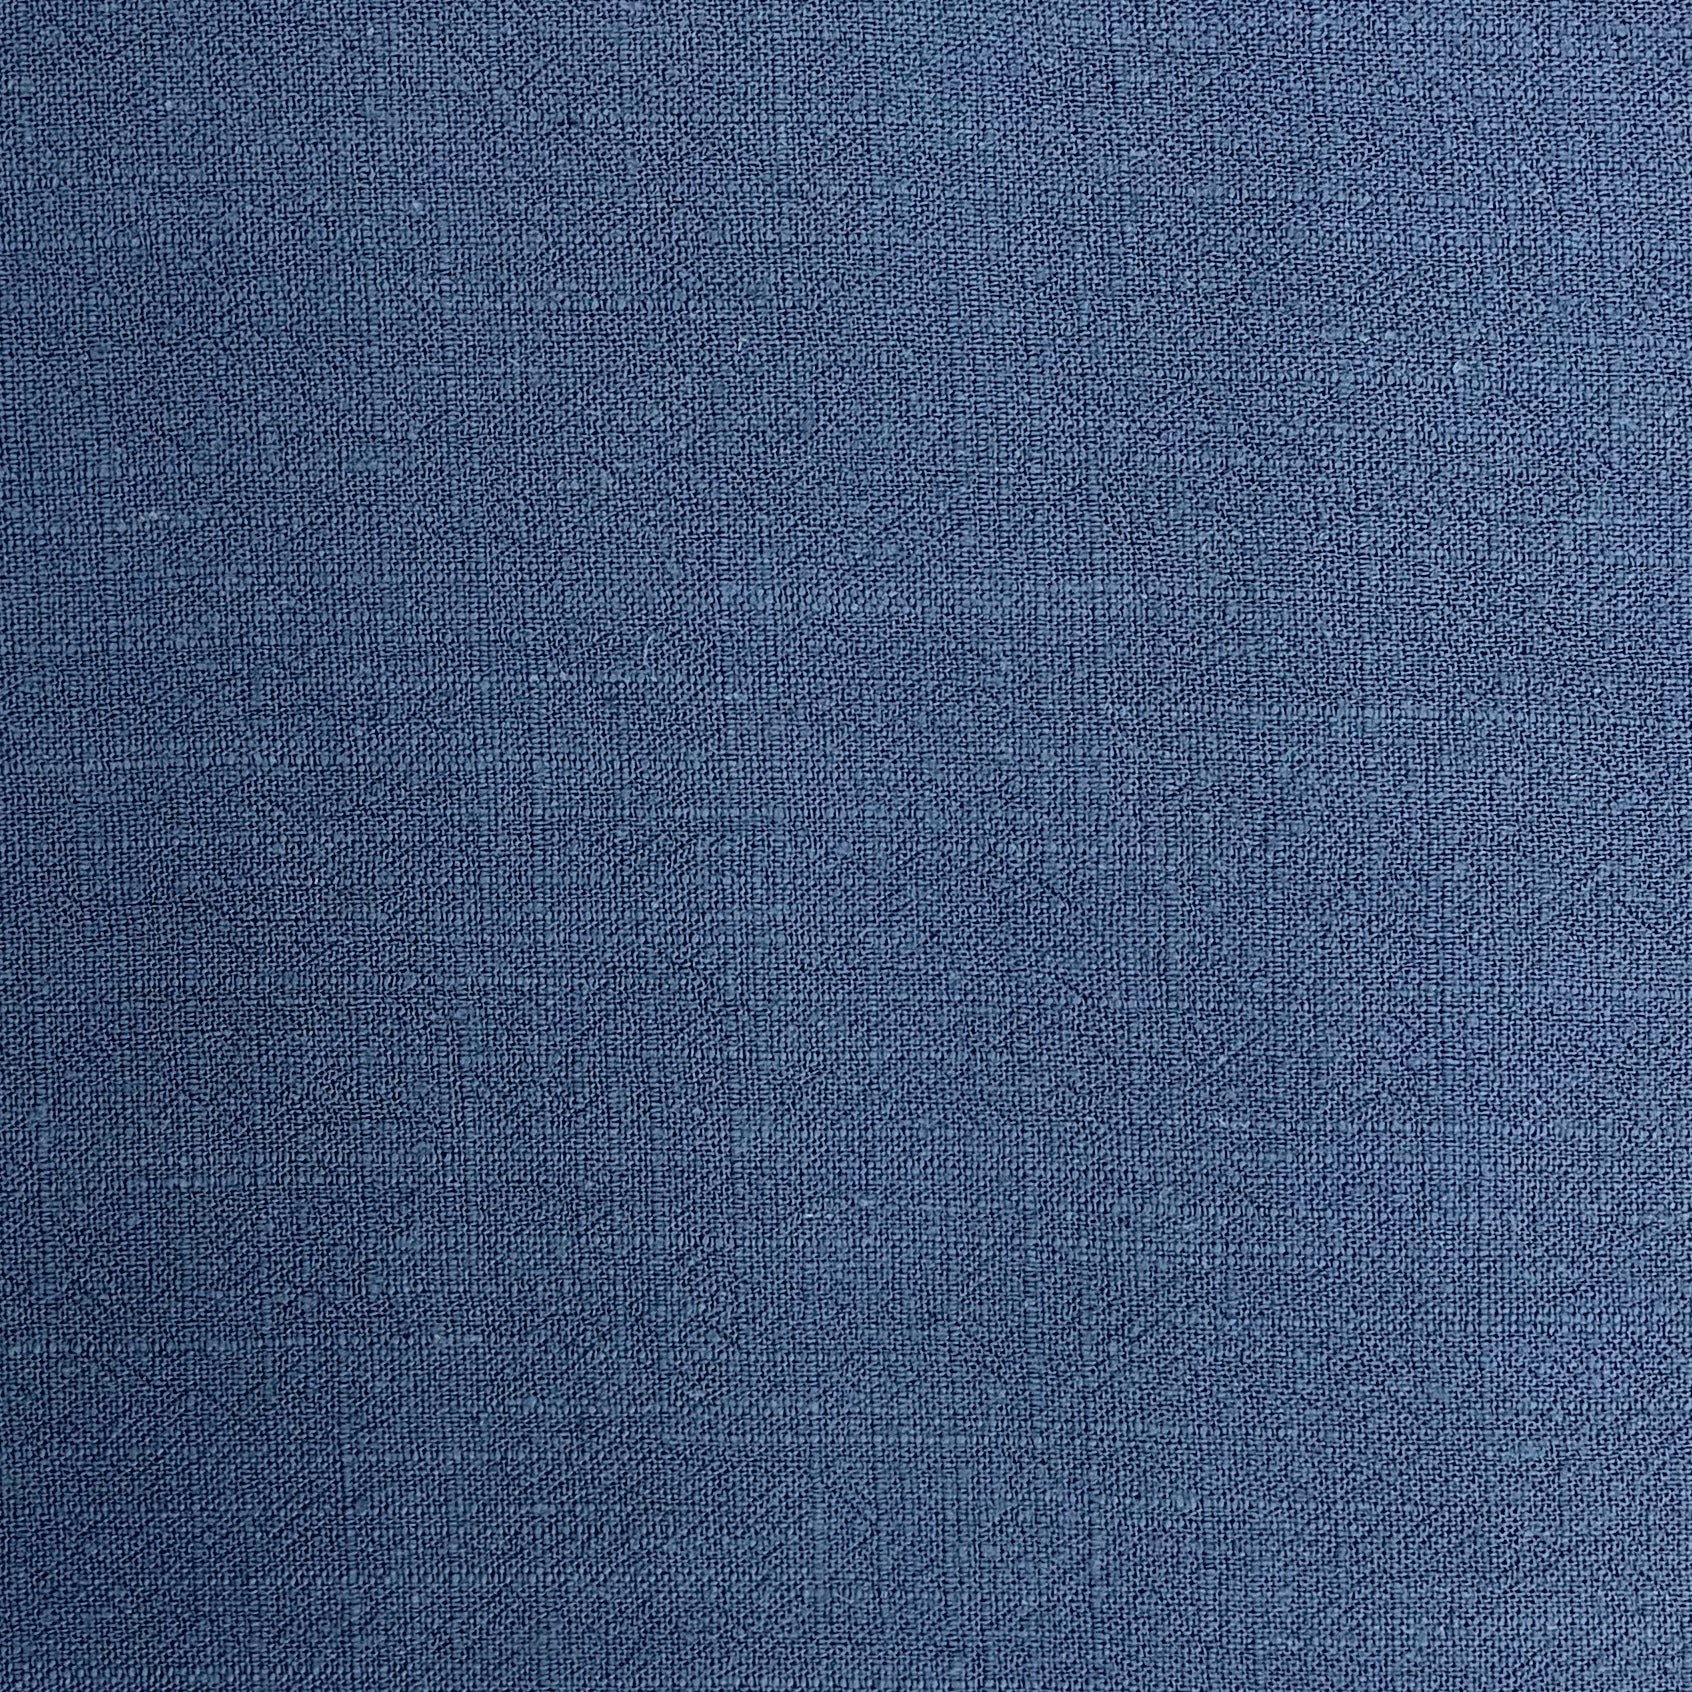 Denim Blue Viscose Linen